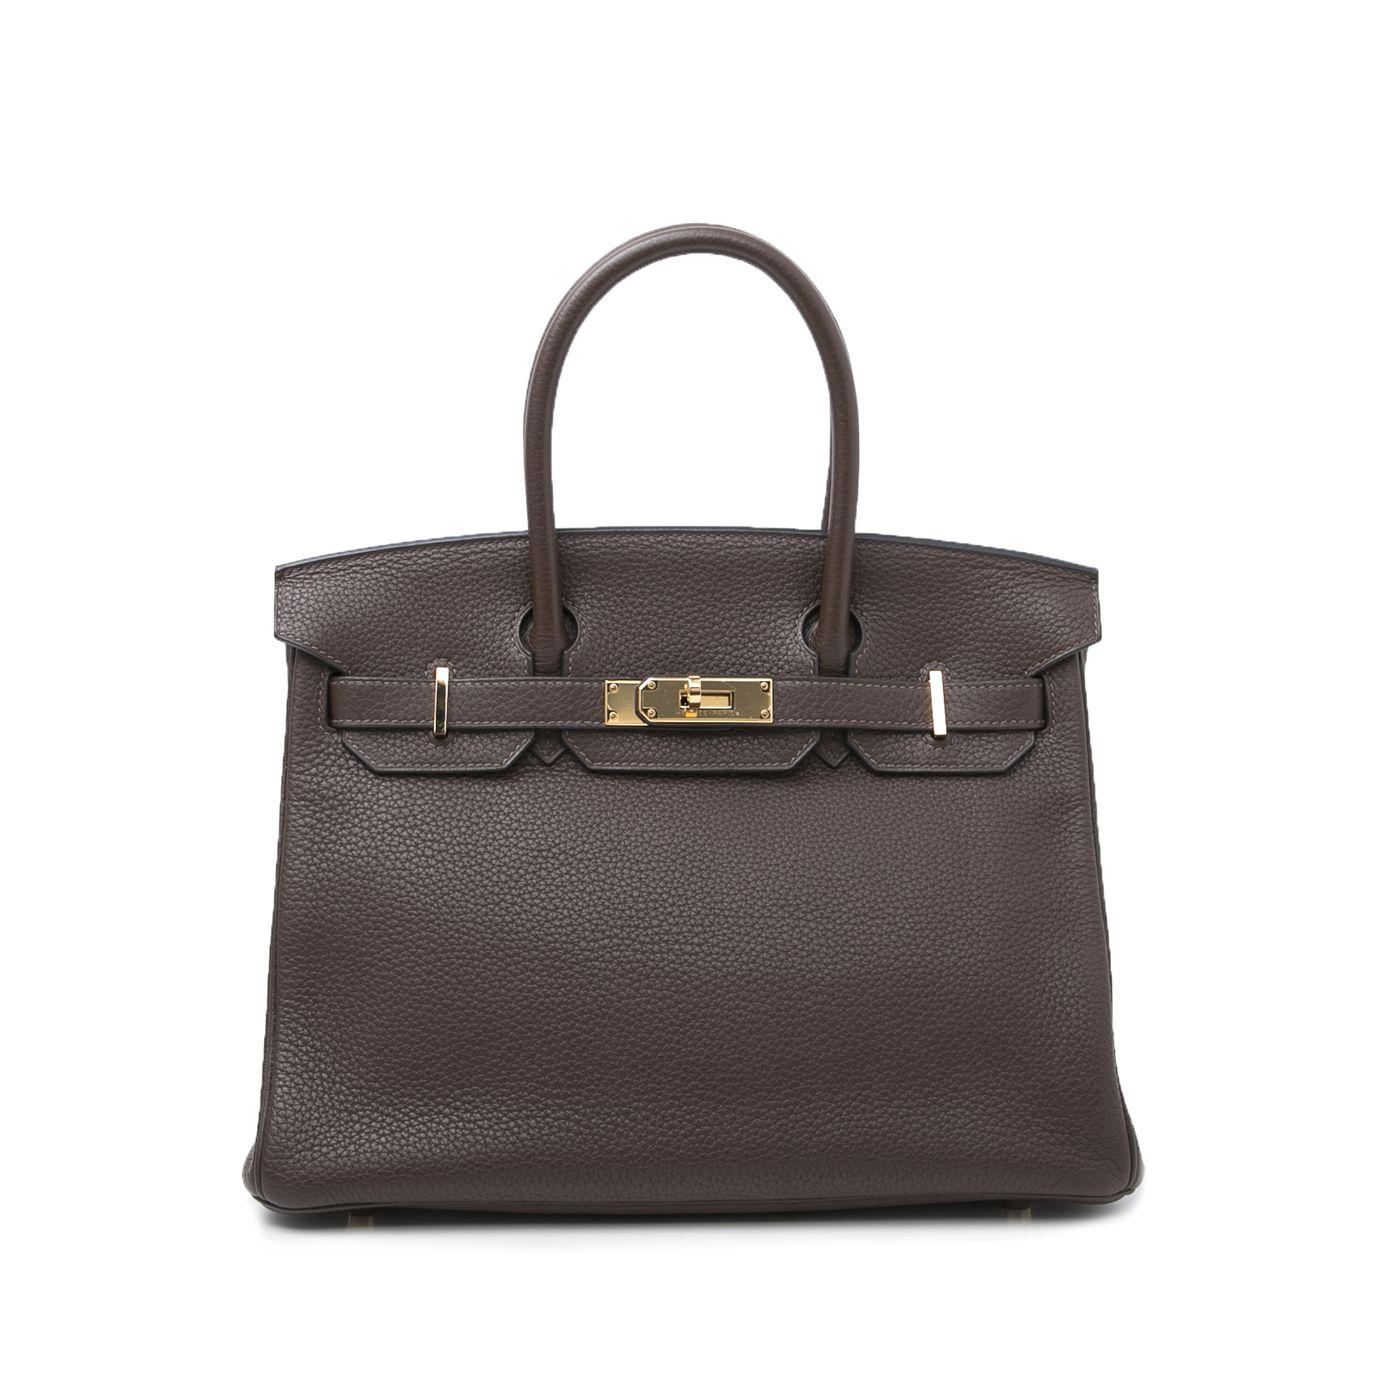 Hermes Chocolate Birkin 30 Bag